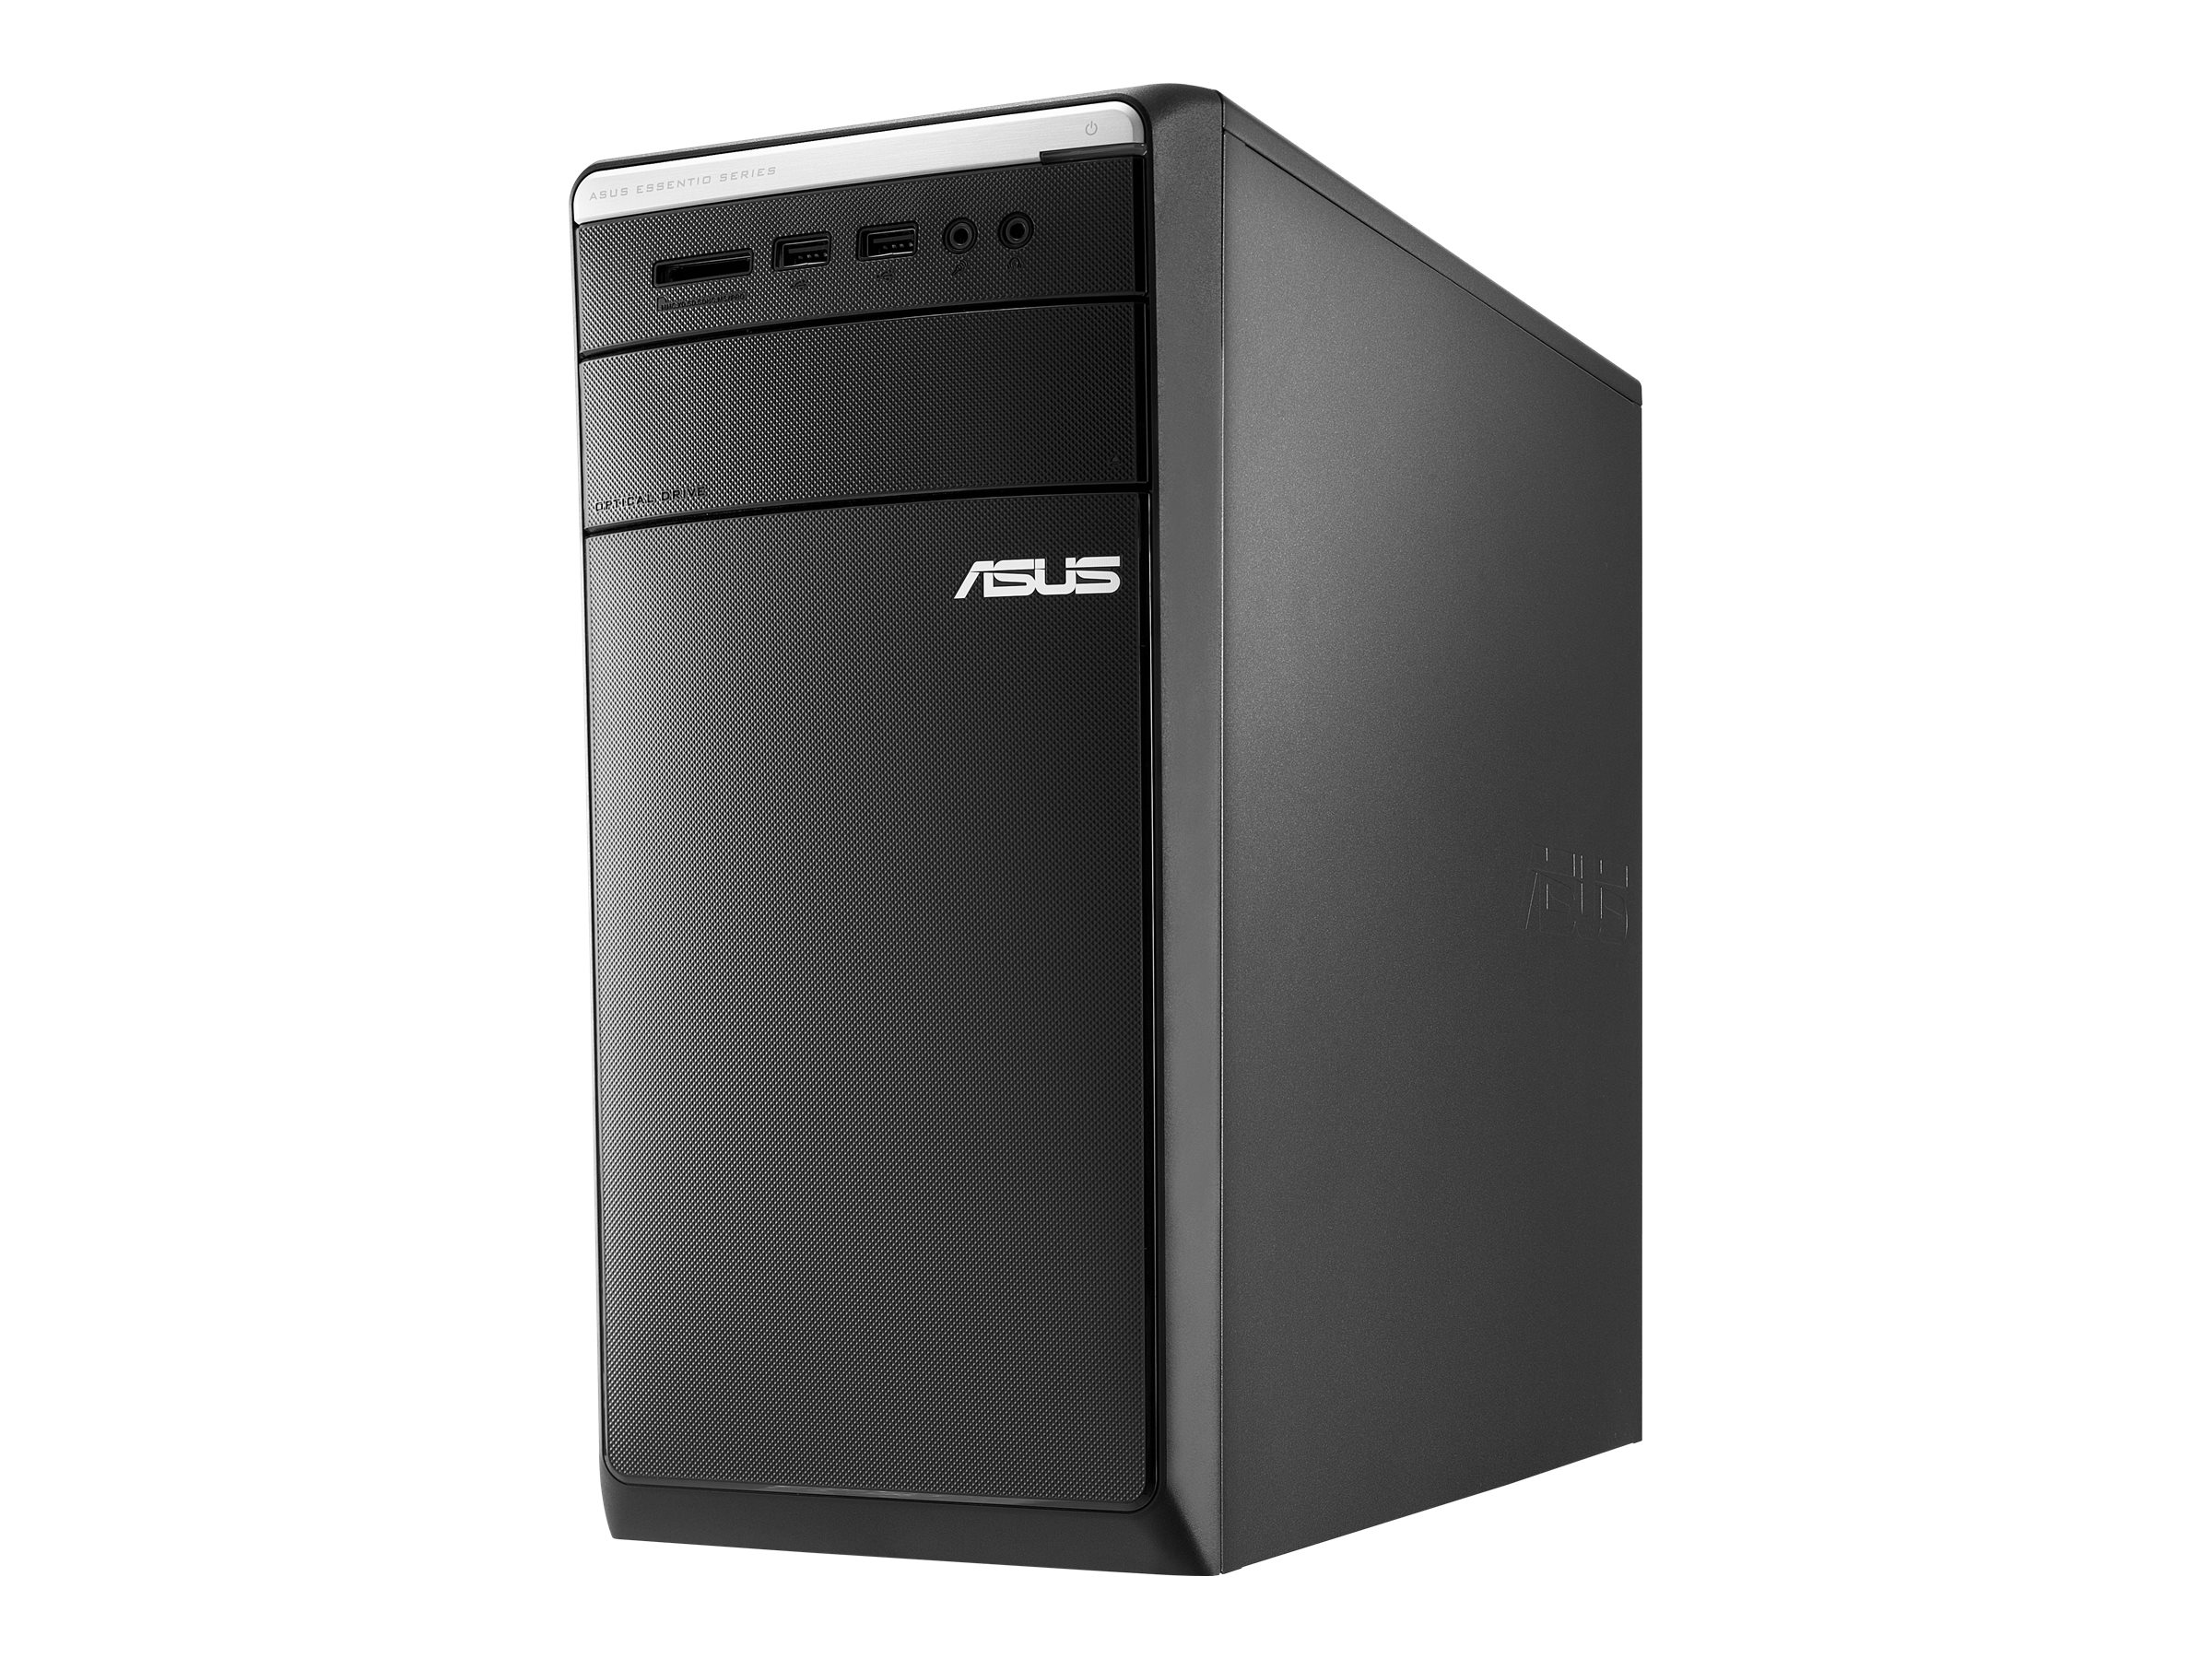 Asus M11AD-US010O Tower Core i5-4460 12GB 2TB DVD+RW GBe HD4600 W7HP, M11AD-US010O, 17599515, Desktops